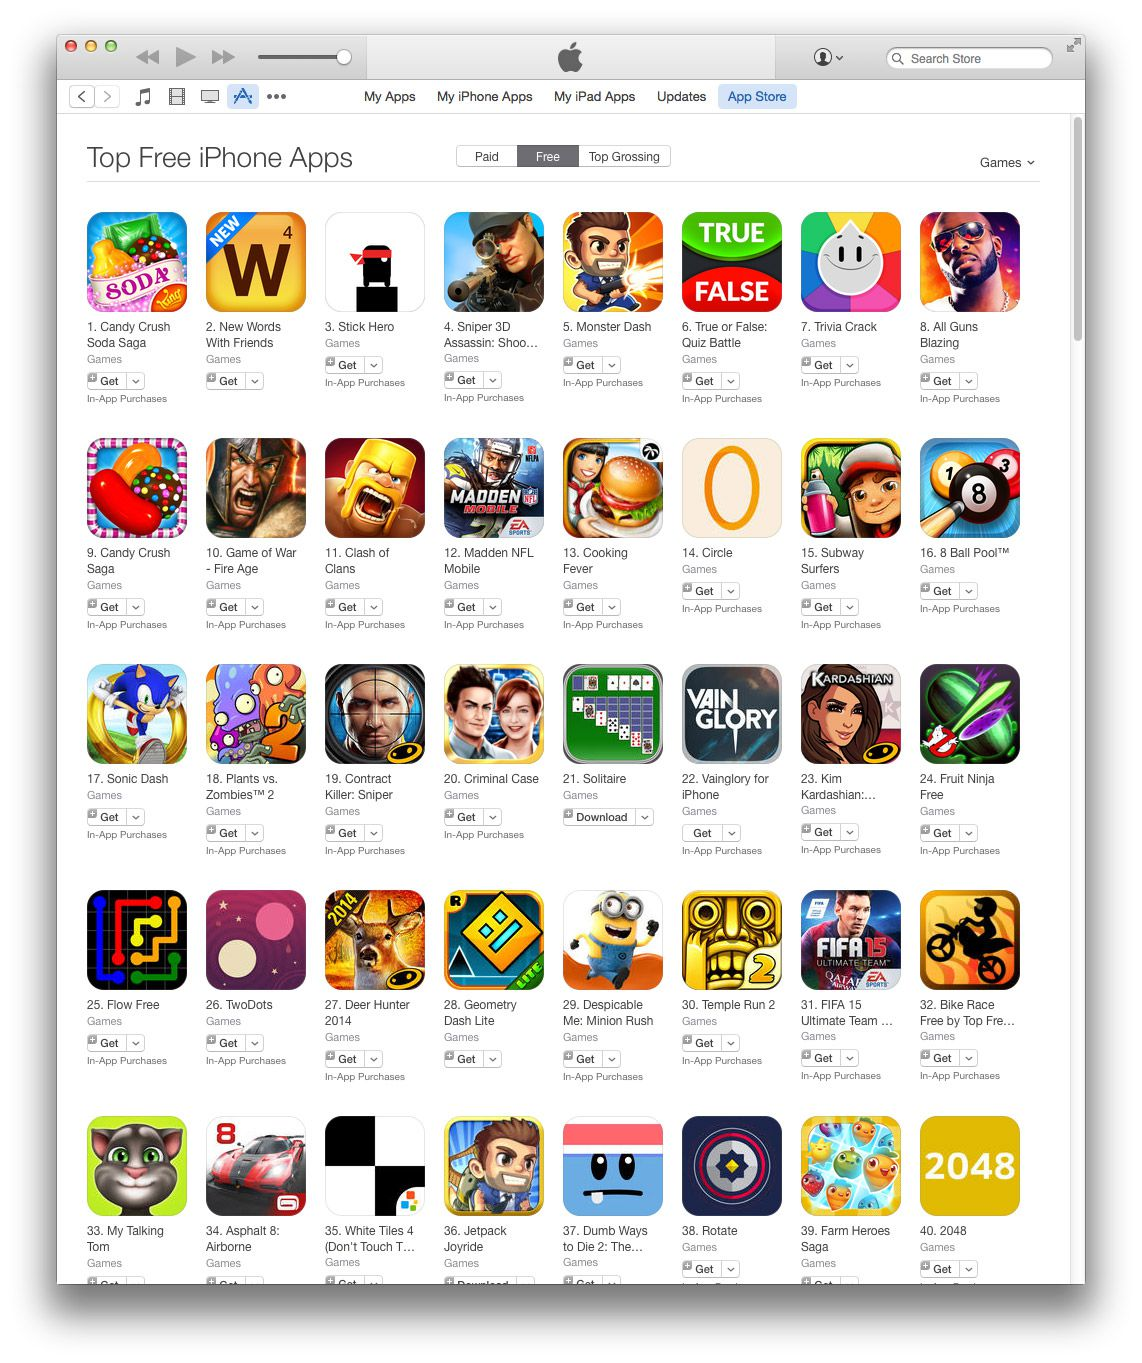 how to get app store games for free